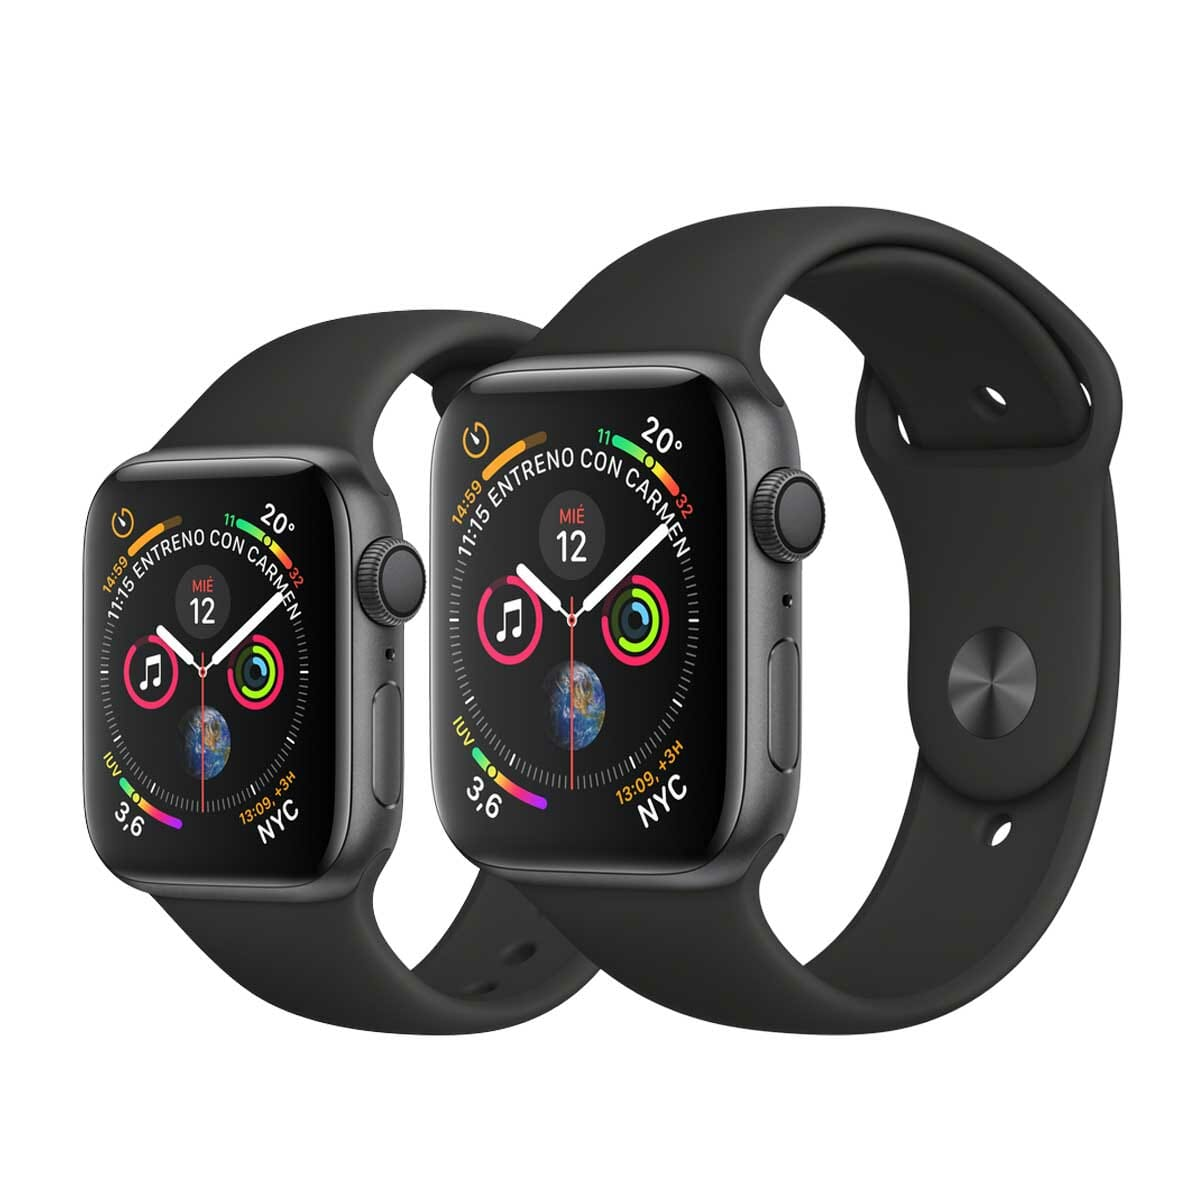 c299a66a37f4 Apple Watch Series 4